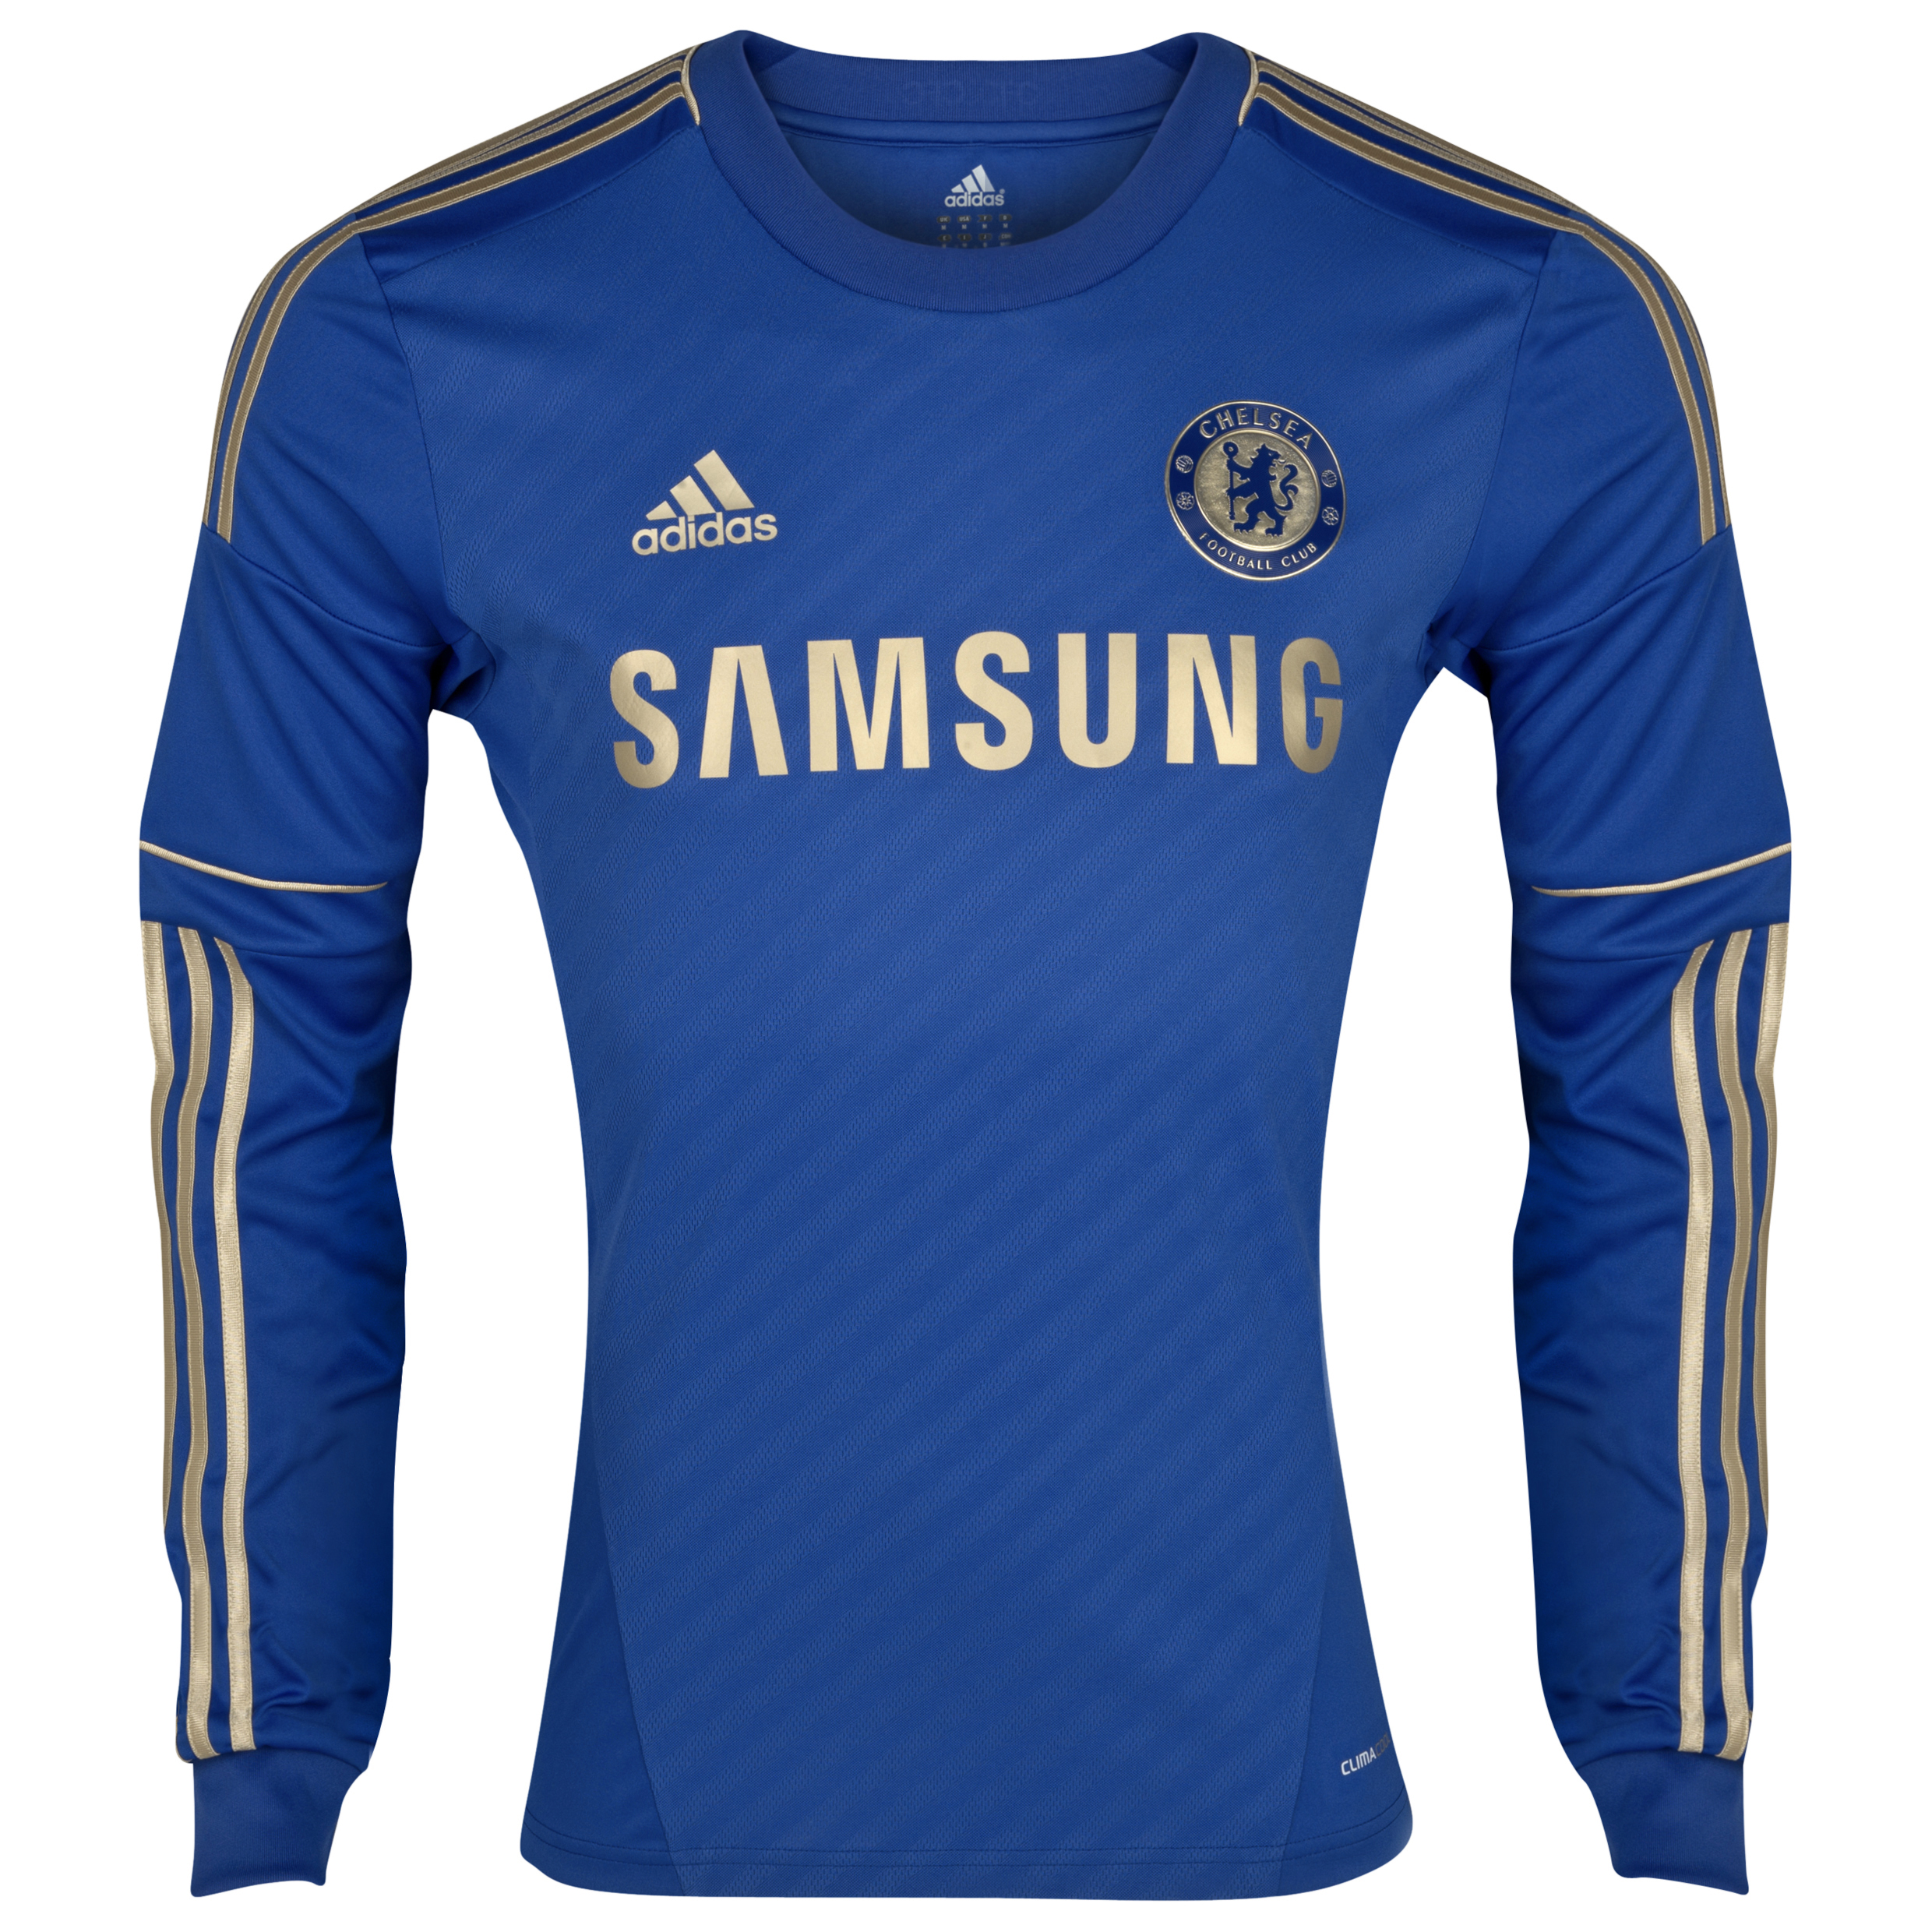 Chelsea Home Shirt 2012/13 - Long Sleeved - Youths